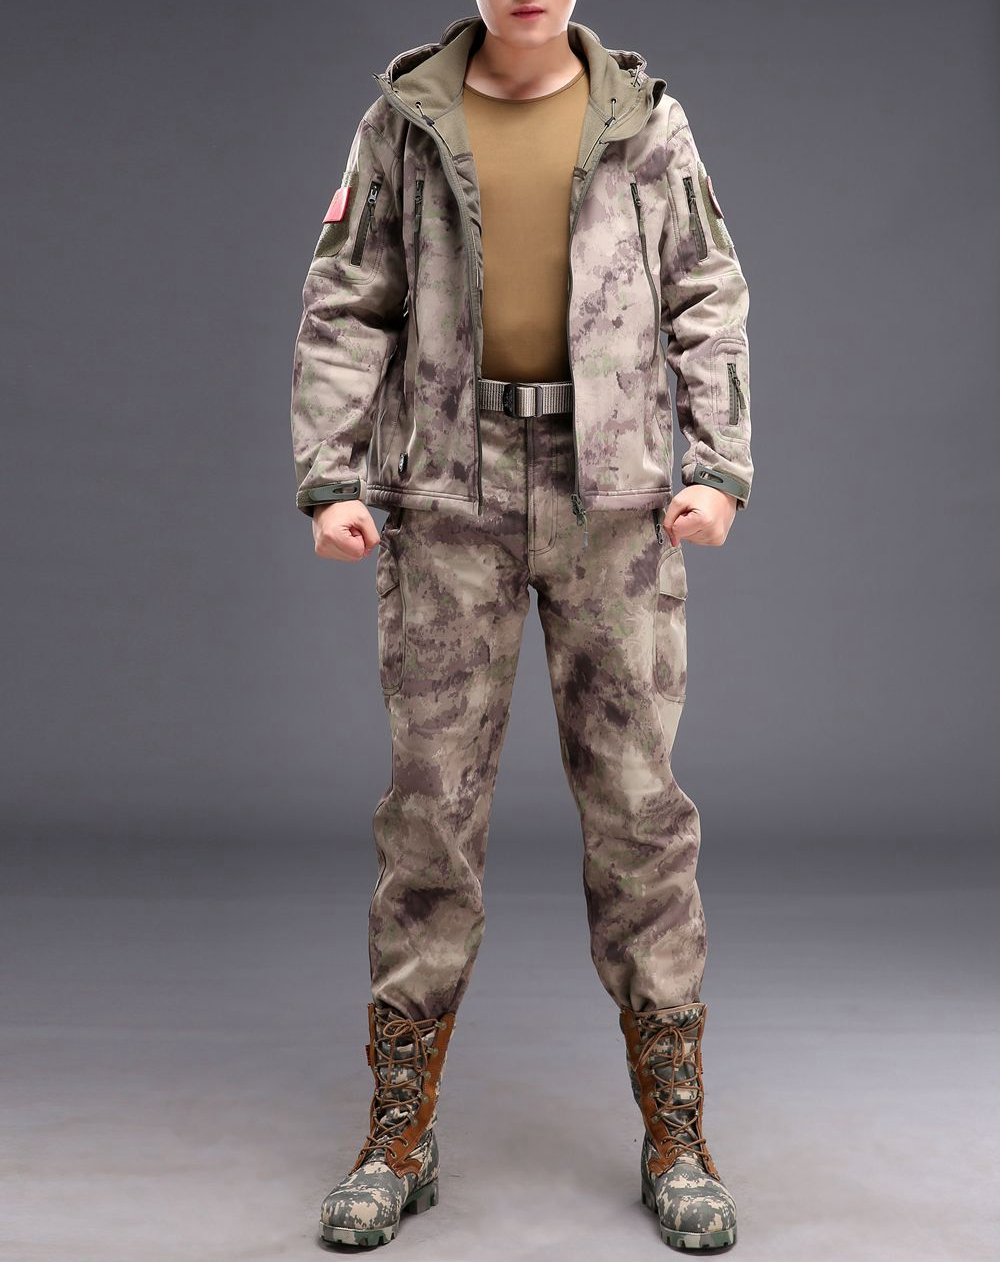 Camouflage hunting clothing Shark skin soft shell lurker tad v 4.0 outdoor tactical military fleece jacket + uniform pants suits lurker shark skin soft shell v4 military tactical jacket men waterproof windproof warm coat camouflage hooded camo army clothing